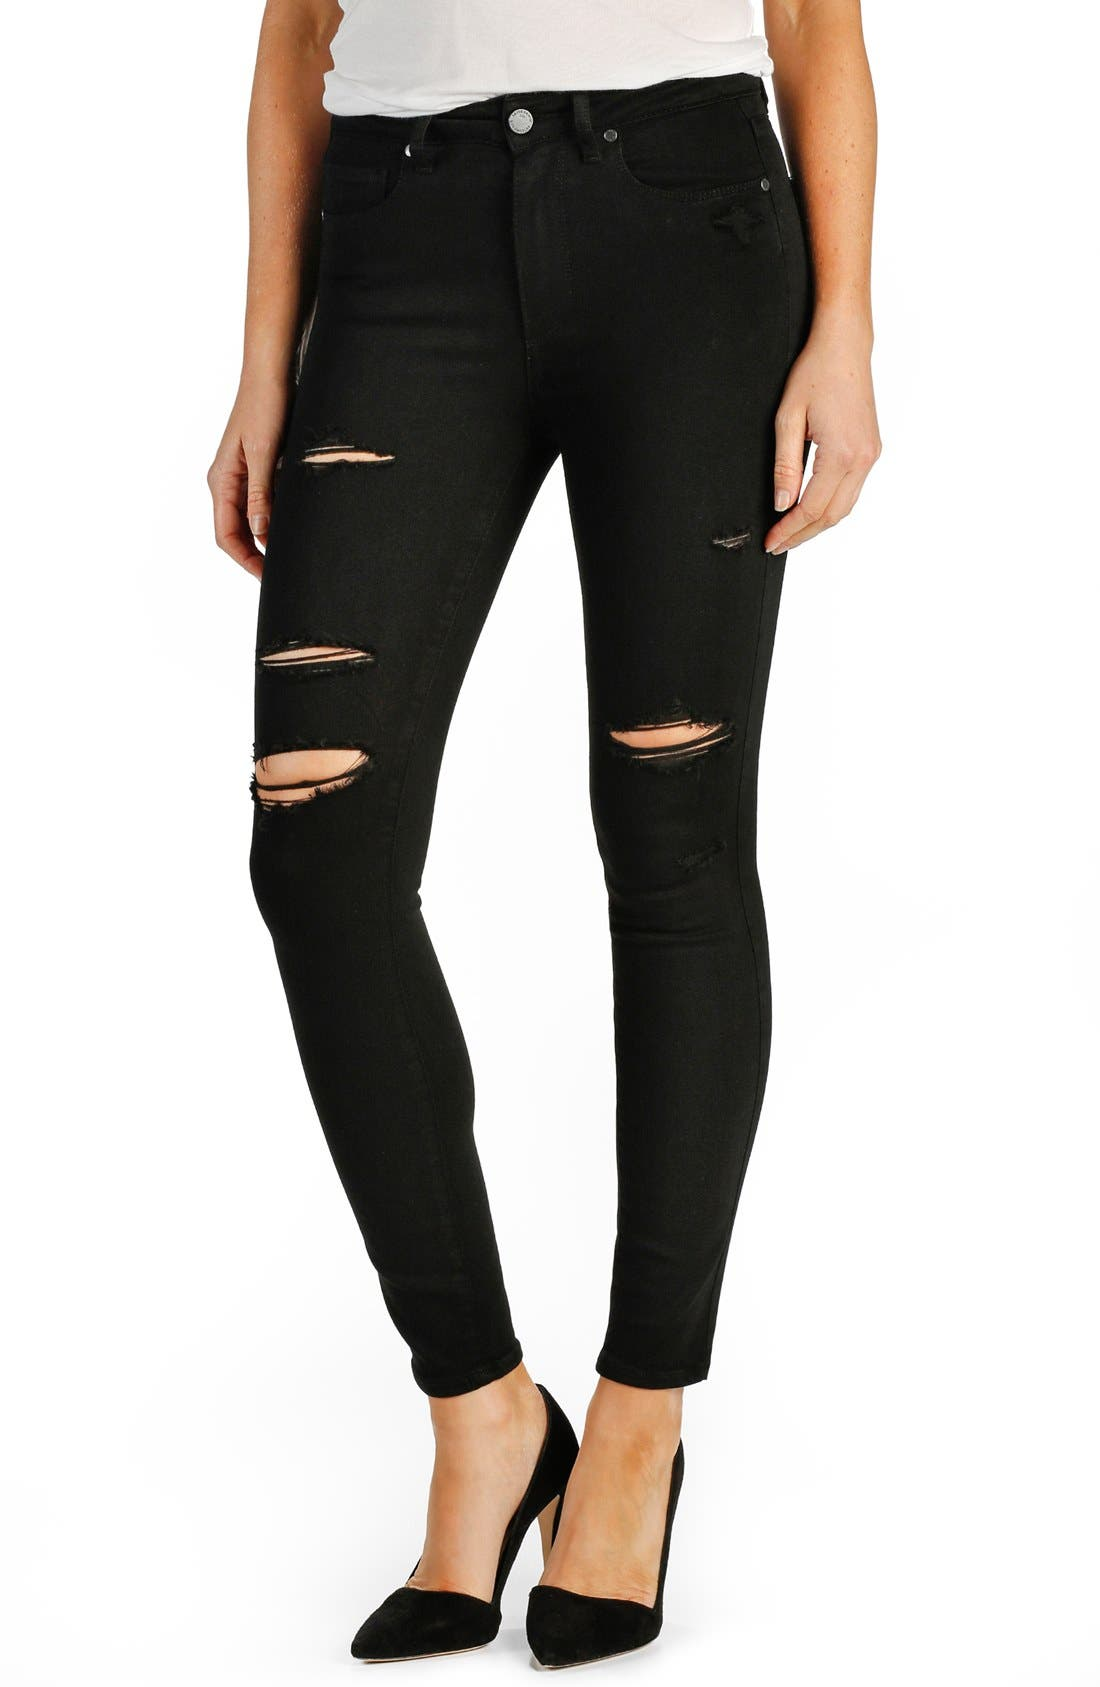 Main Image - PAIGE 'Transcend - Hoxton' High Rise Destroyed Ankle Ultra Skinny Jeans (Black Shadow)